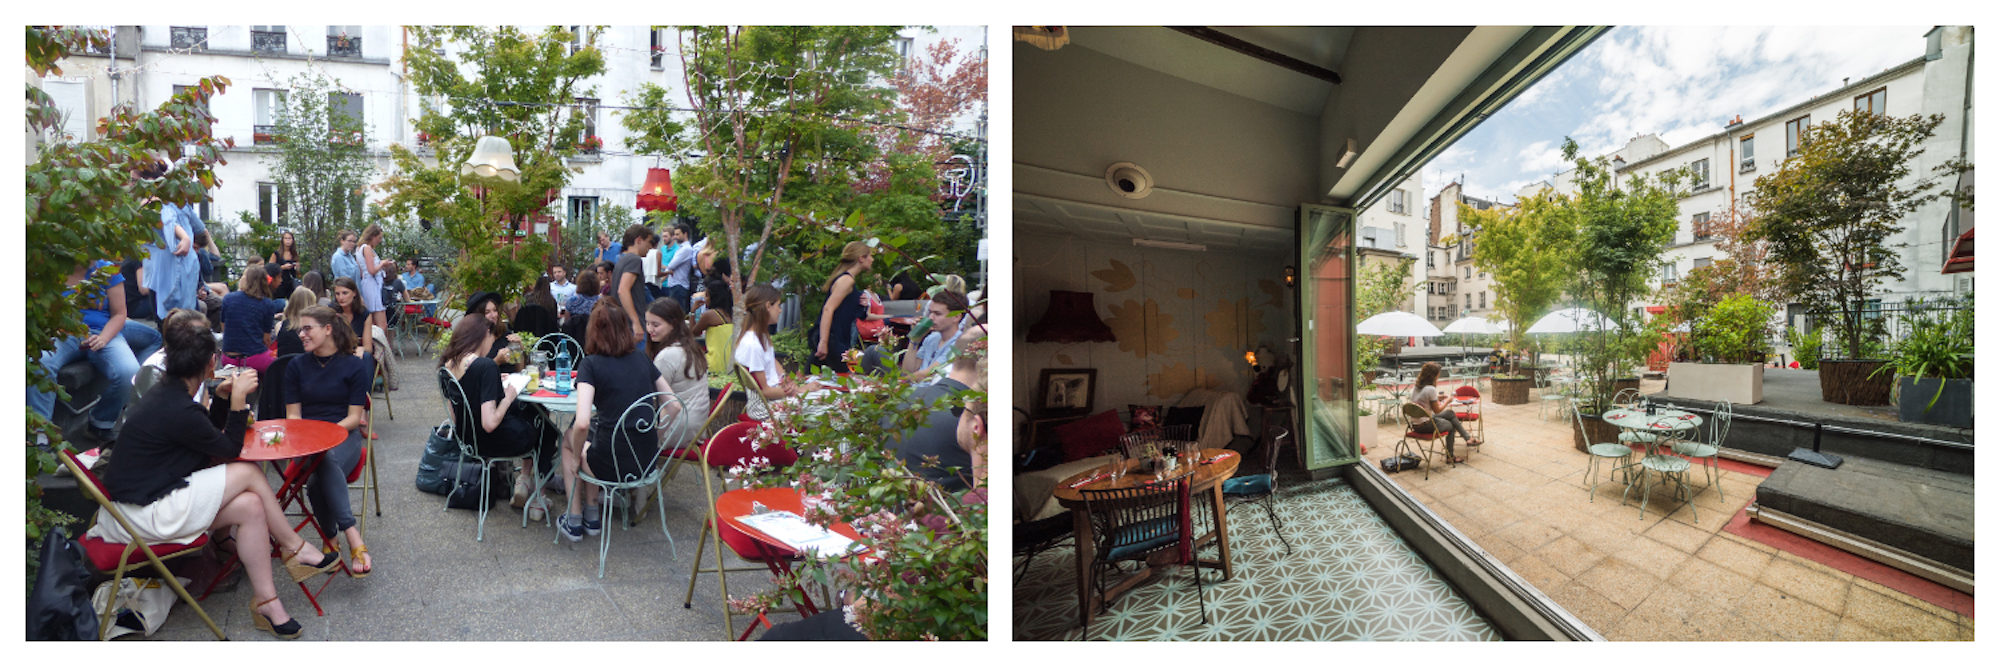 Locals having cocktails at the leafy Paris rooftop bar Le Bar à Bulles (left). Inside the shabby-chic Bar à Bulles, which leads out onto the terrace (right).